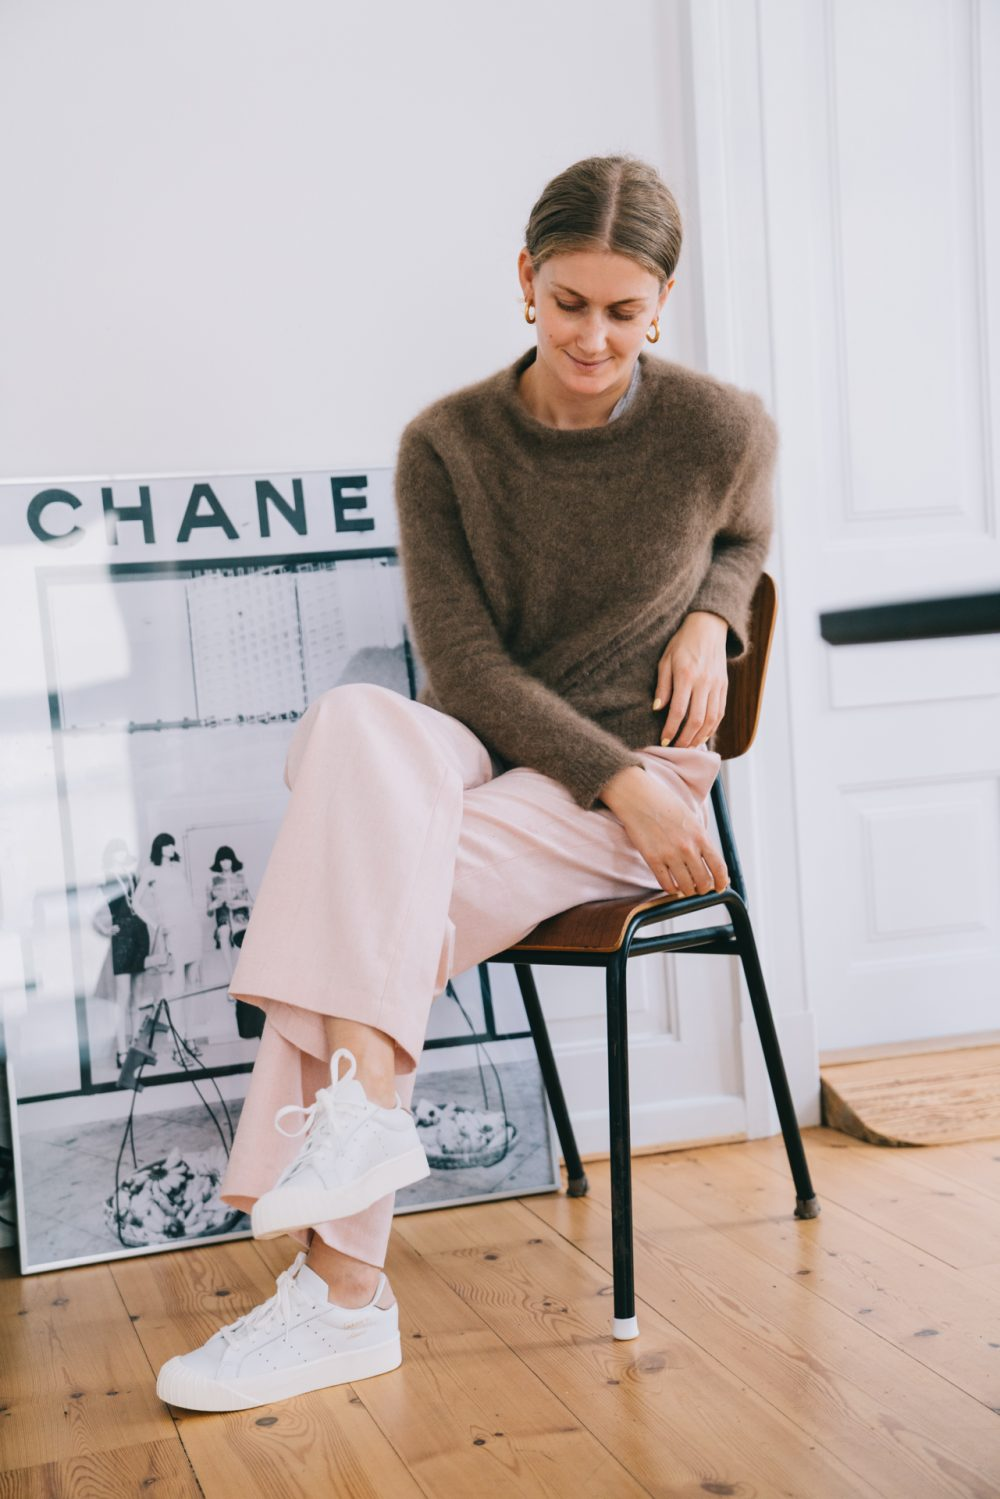 180126-adidas-everyn-womens-frede-office-chanel-pink-pants-04